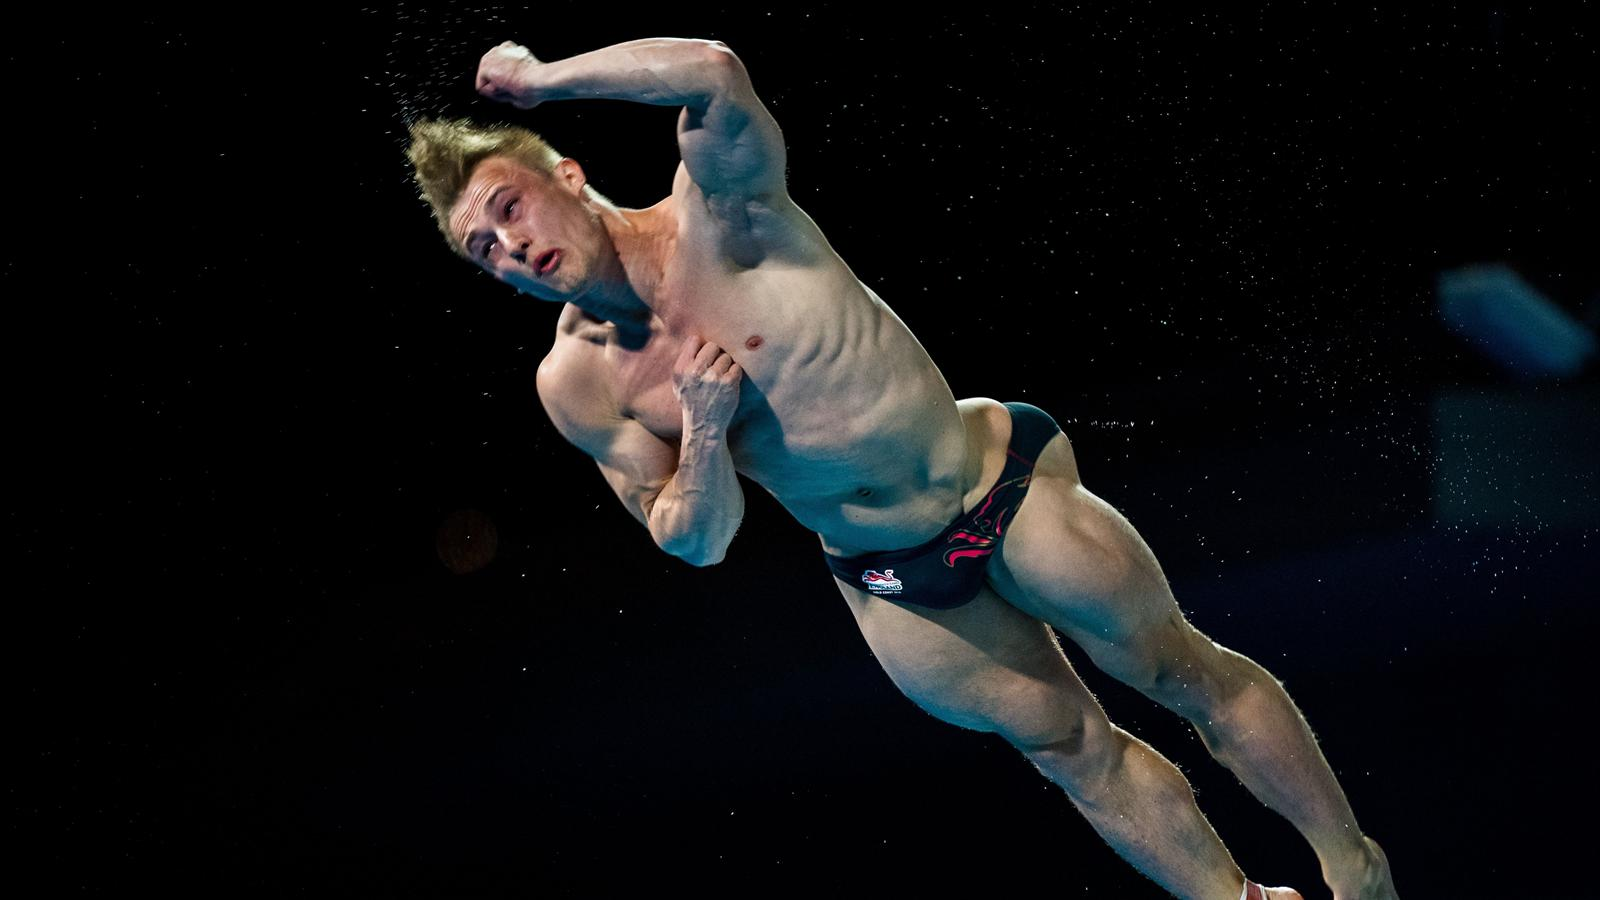 VIDEO - England's Jack Laugher's incredible penultimate 3m ...